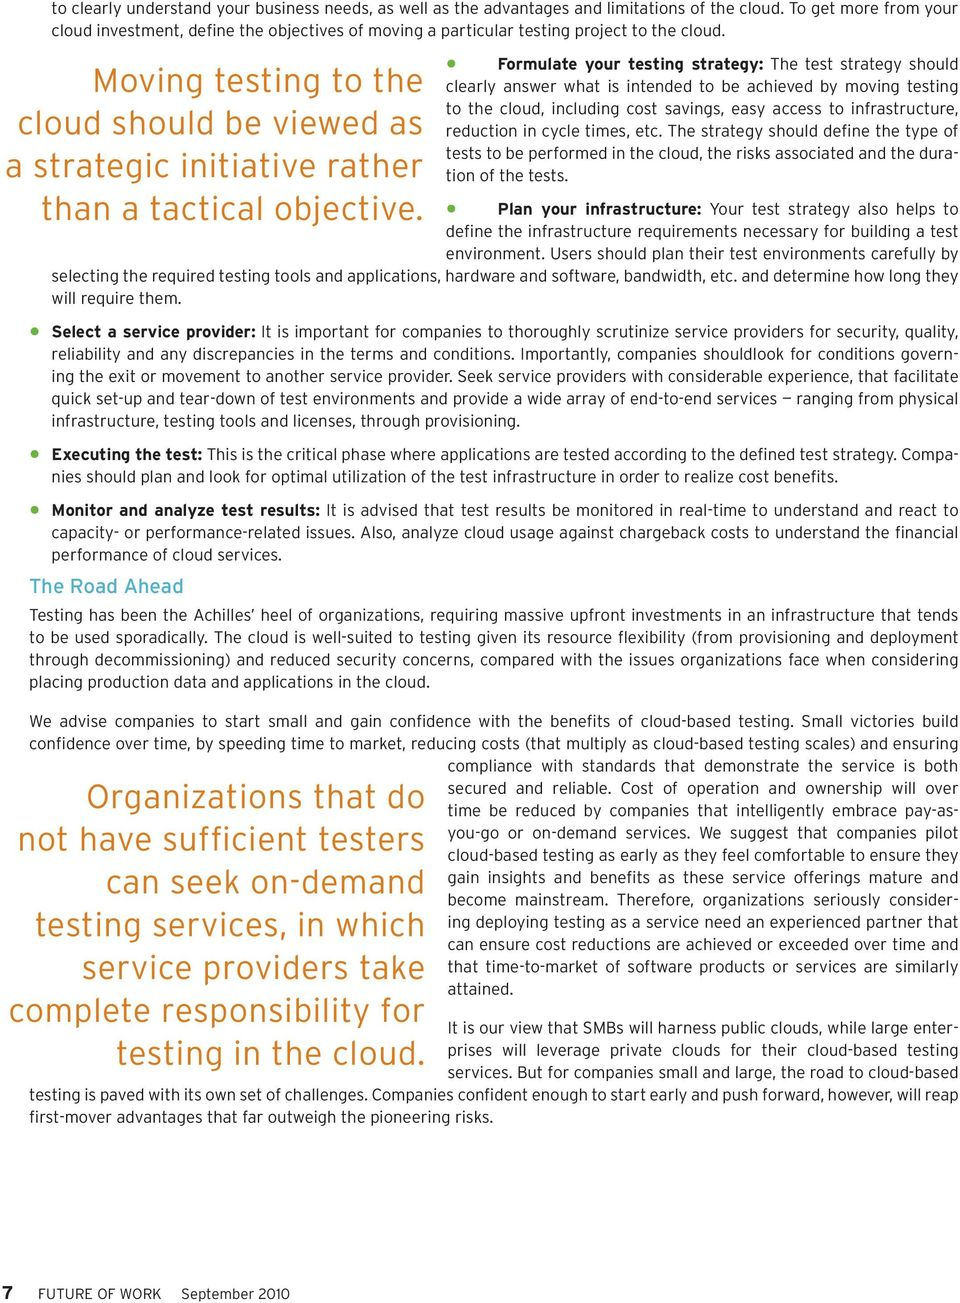 Formulate your testing strategy: The test strategy should clearly answer what is intended to be achieved by moving testing to the cloud, including cost savings, easy access to infrastructure,